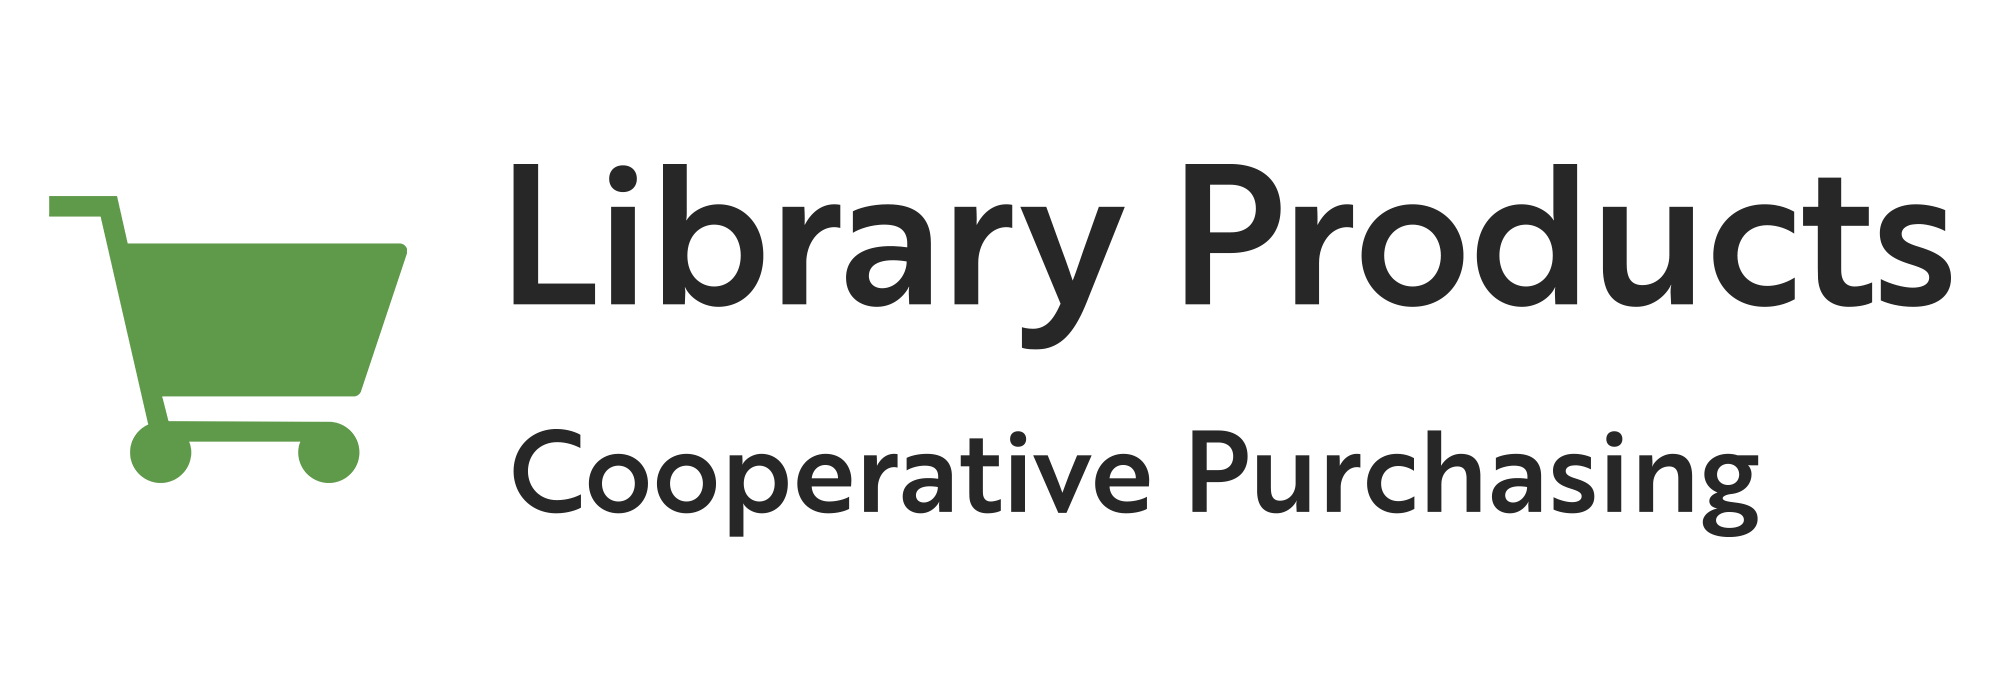 Library Products logo.